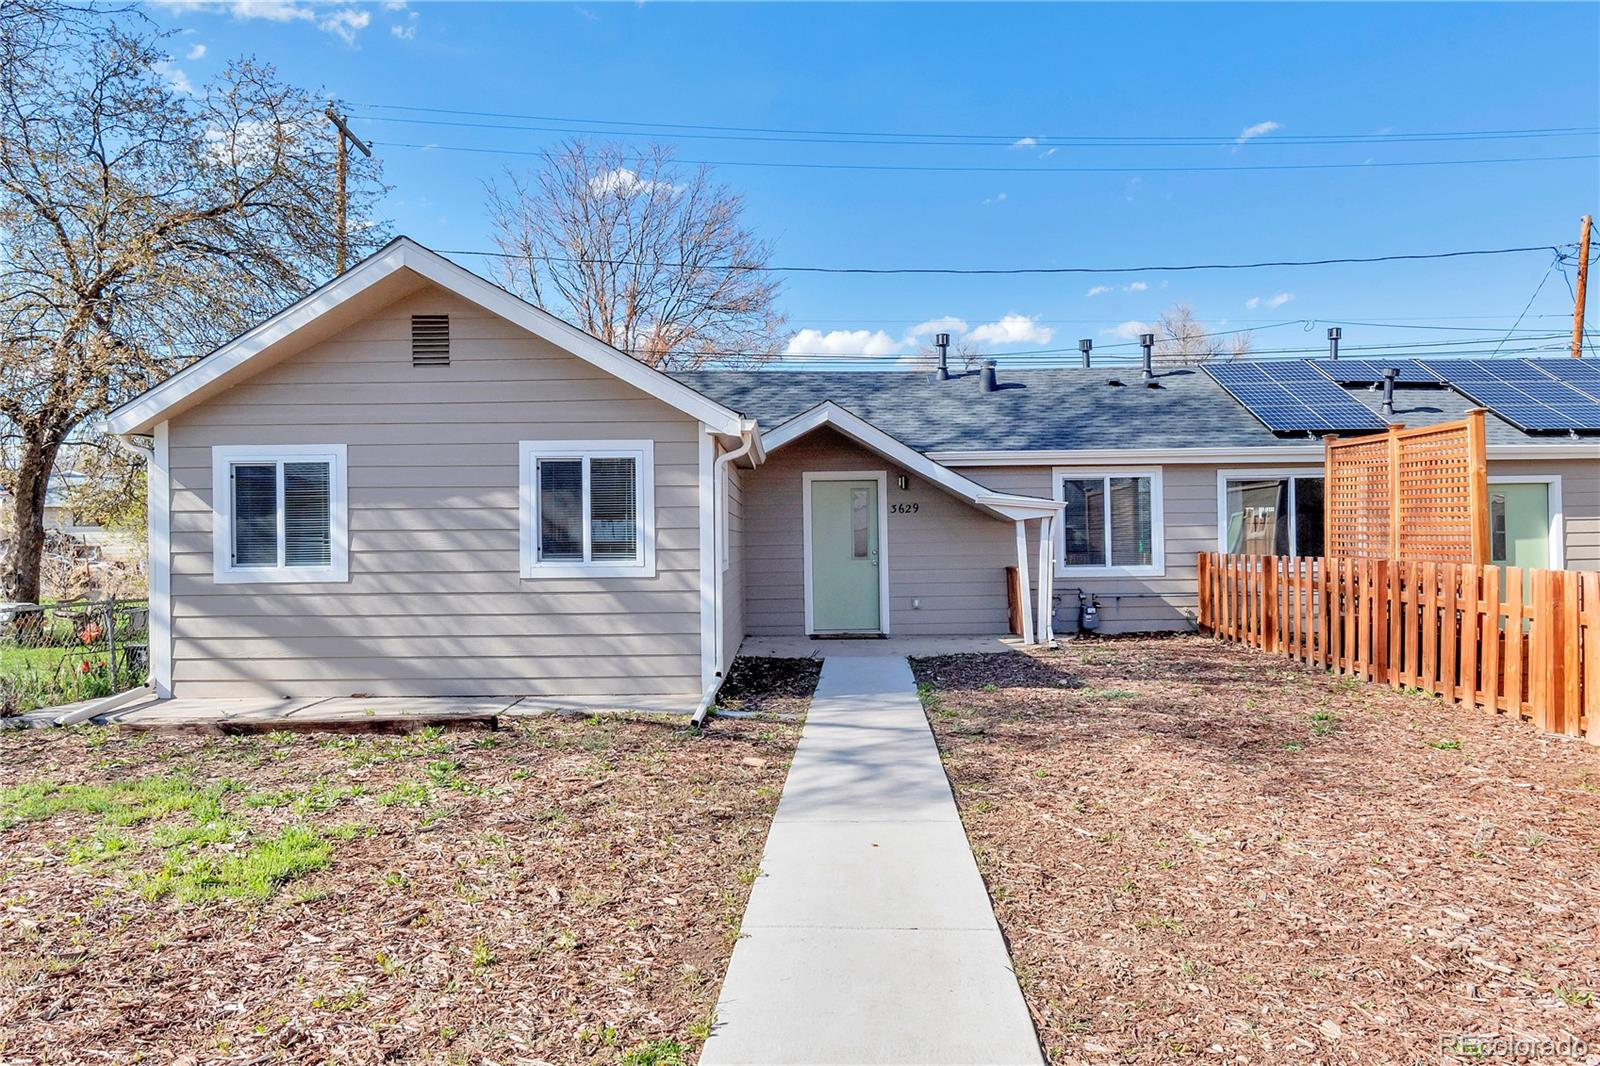 3629 W Custer Place Property Photo - Denver, CO real estate listing